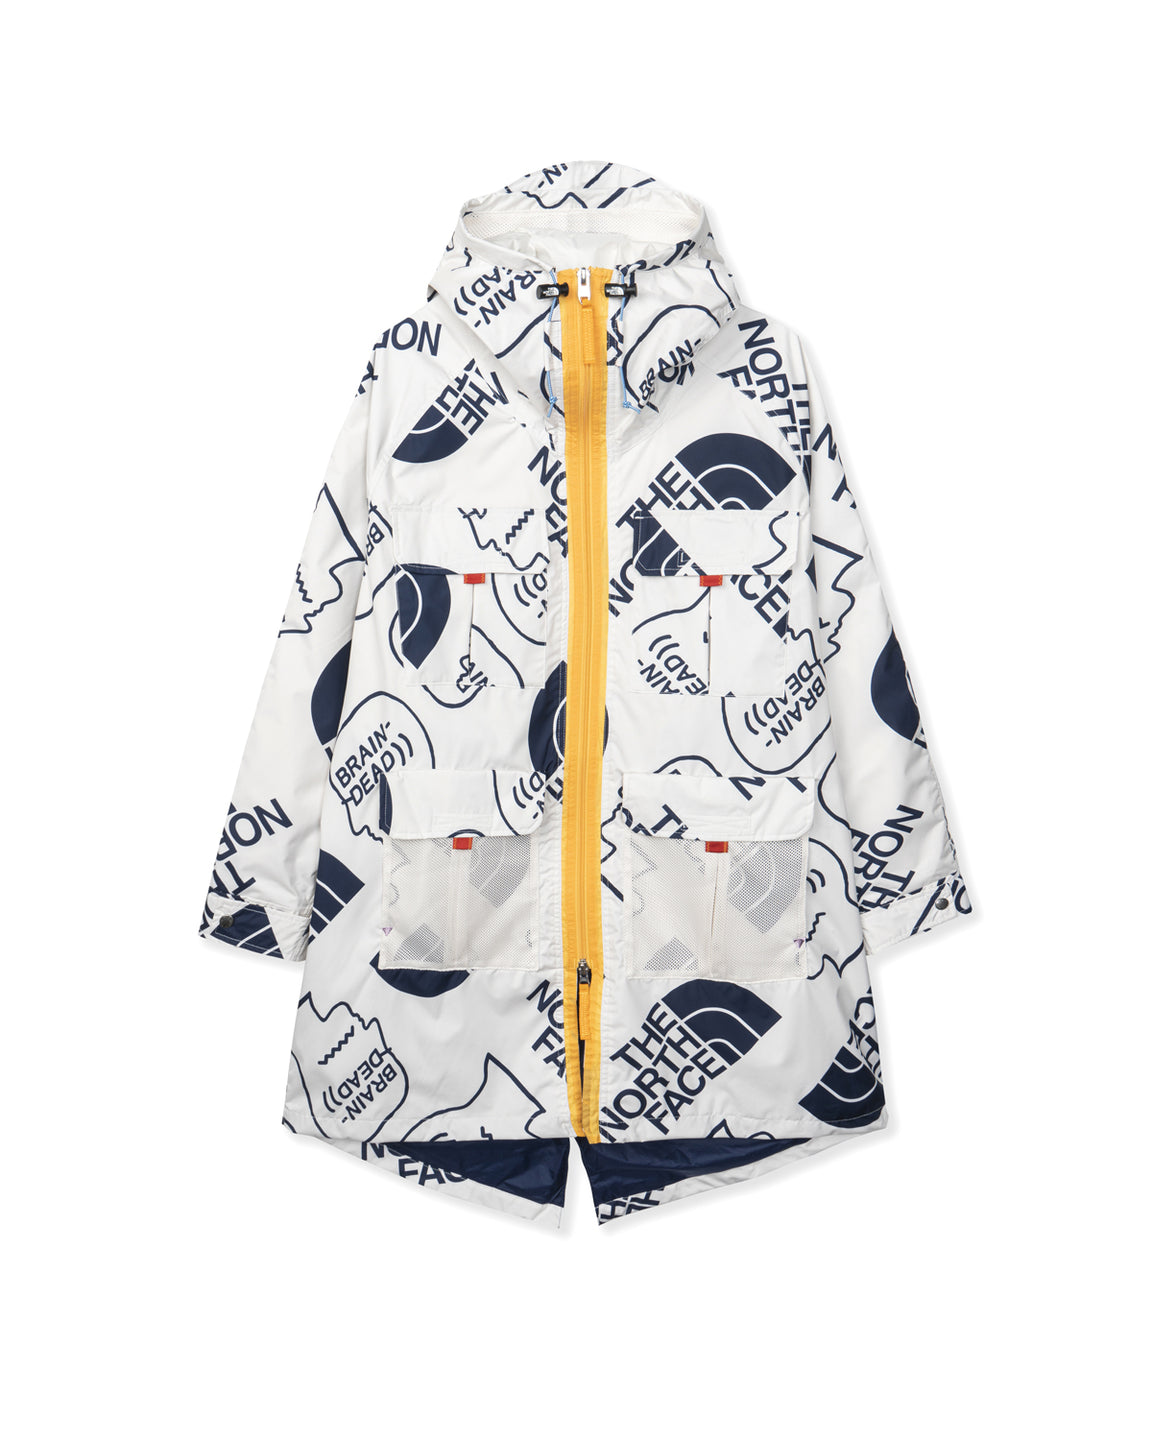 The North Face x Brain Dead 76 Oversized Mountain Parka - Vintage White